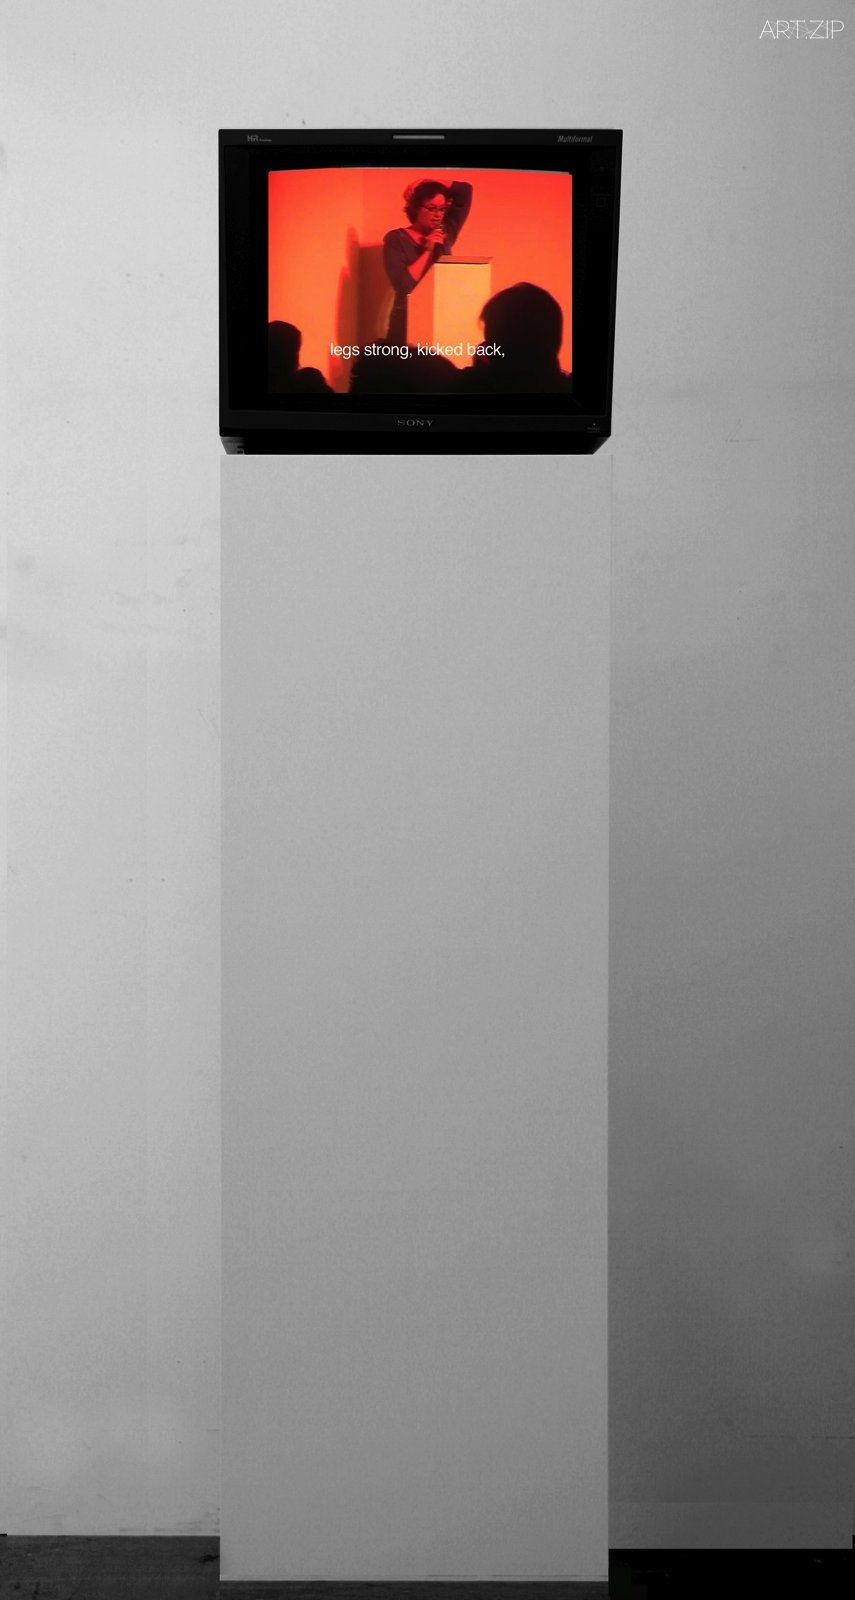 Fiona Banner, Mirror, 2007. Video, monitor, plinth. 3.02 minutes. © Fiona Banner and courtesy the artist, YSP and Frith Street Gallery, London